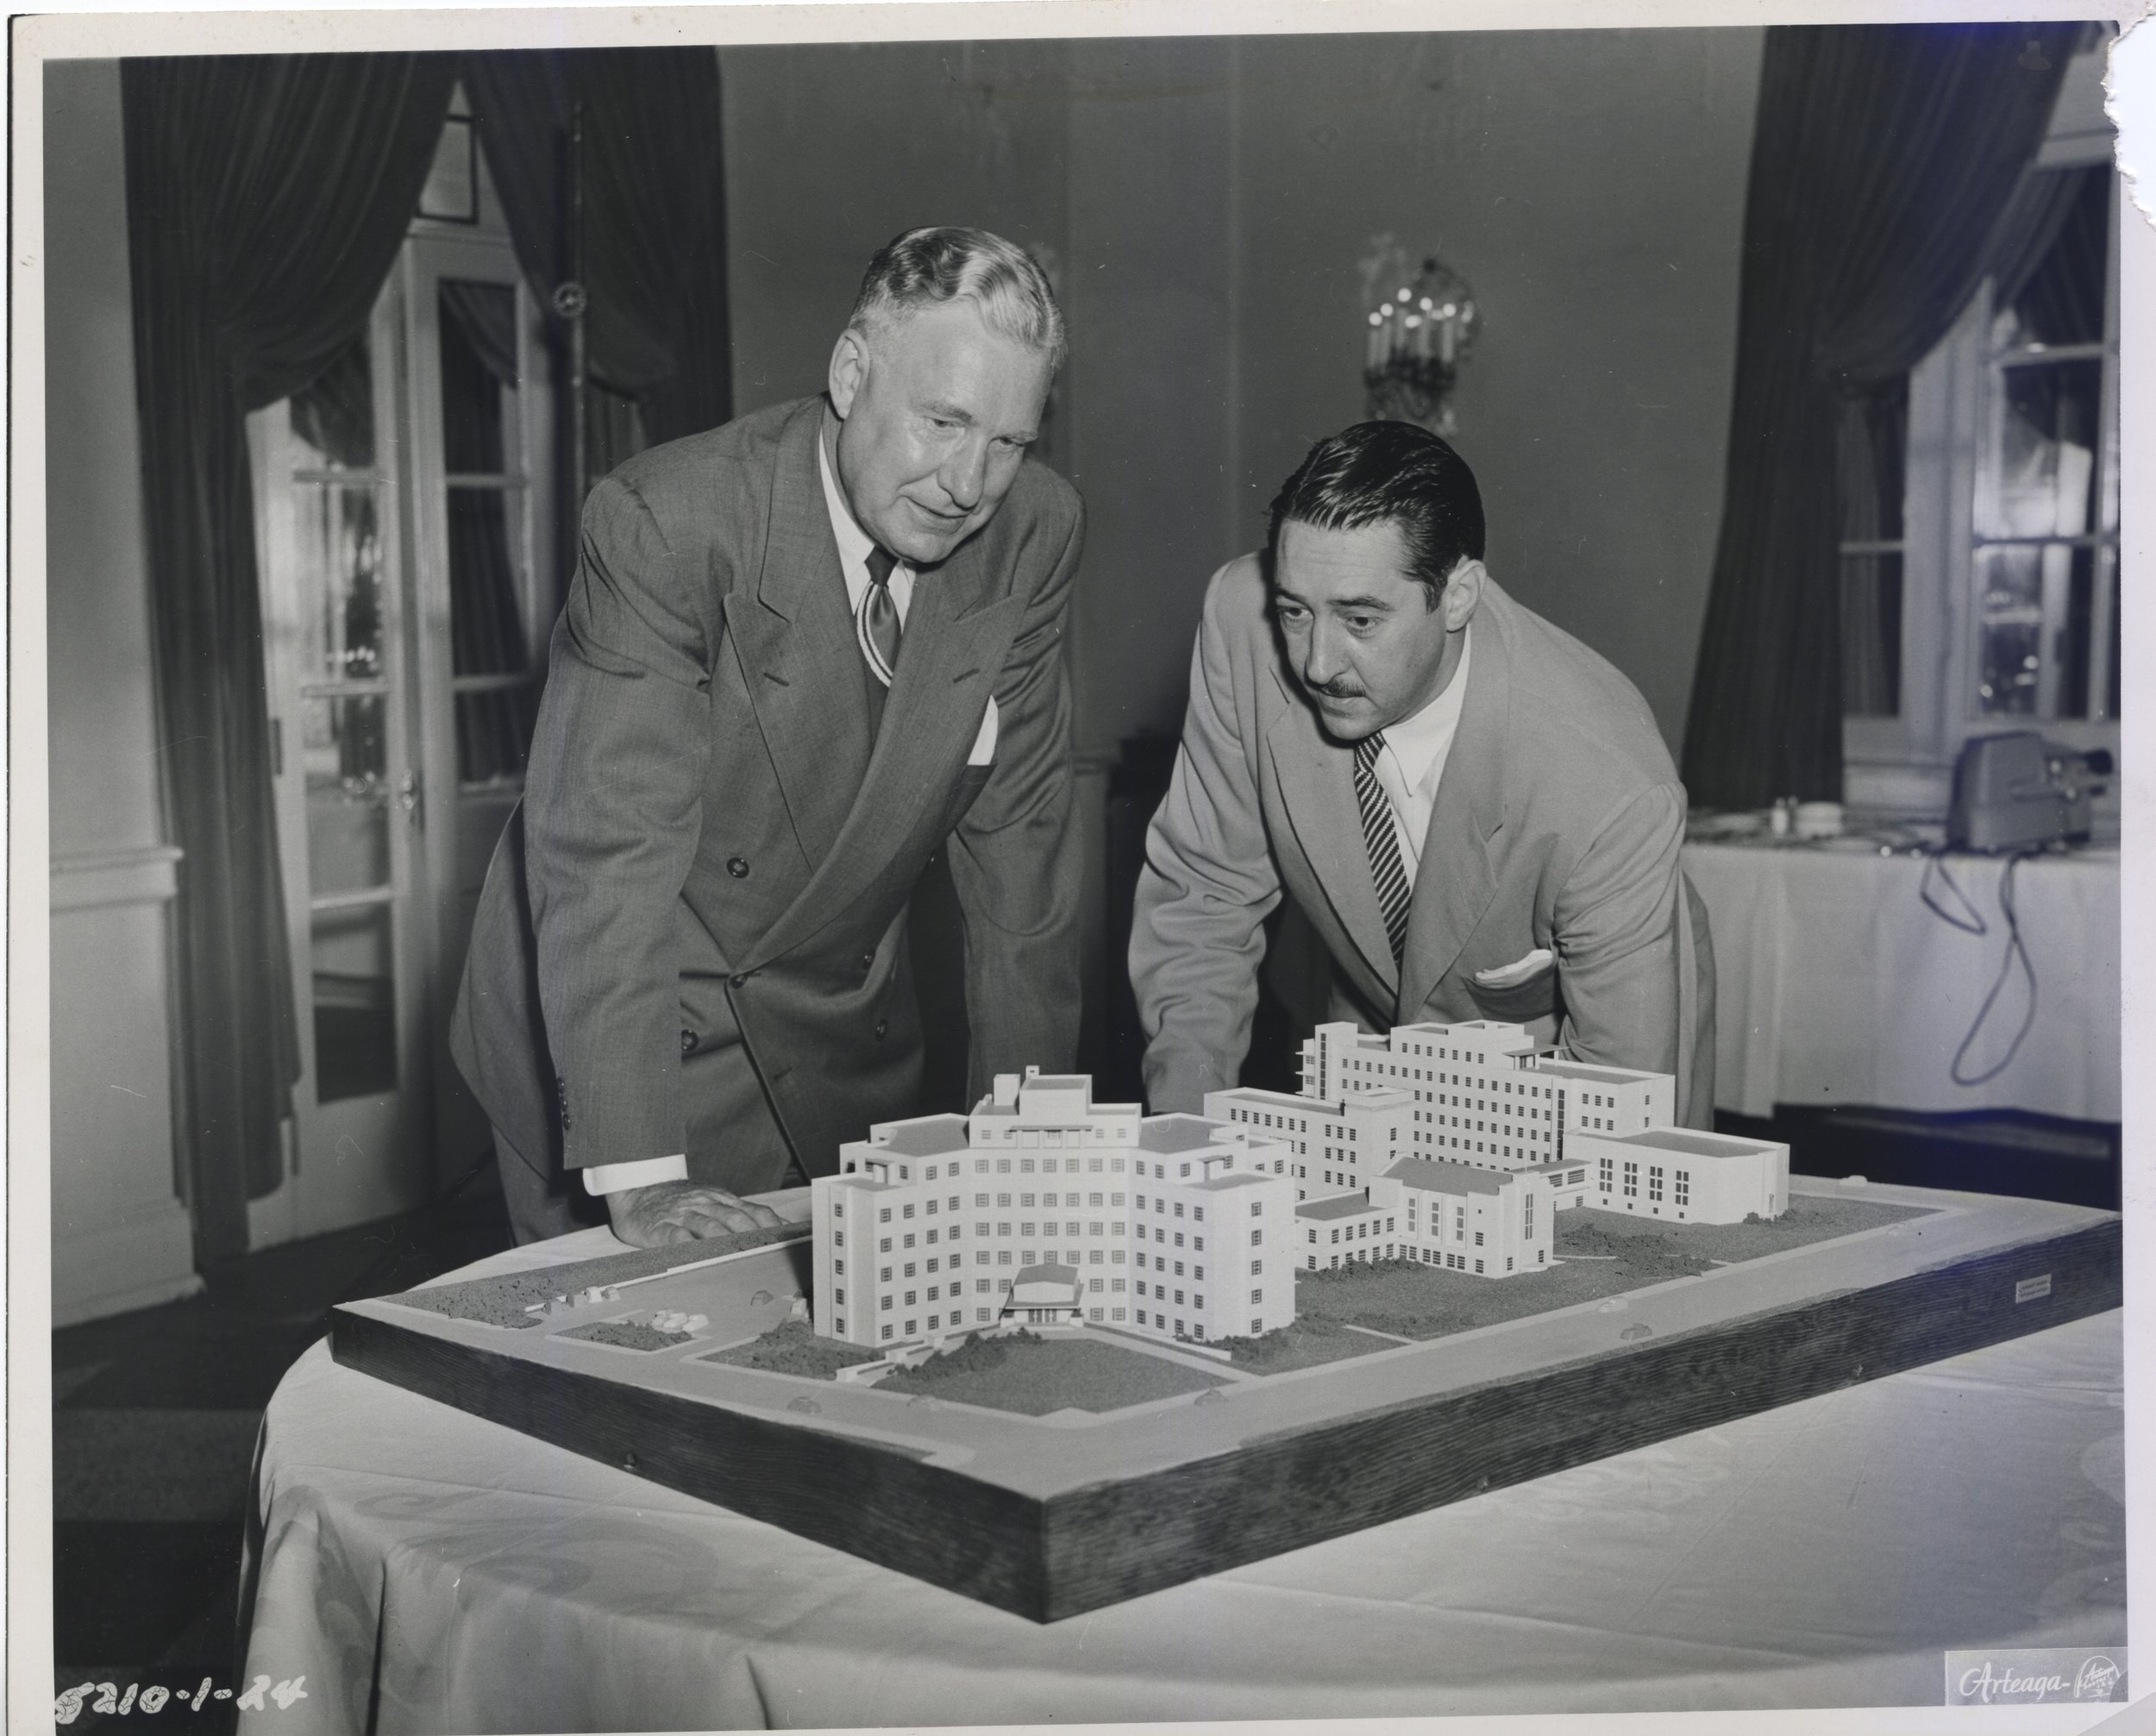 From the left, Leo Wieck and Dr. Peter Danis, two of the founders of the first Catholic Children's Hospital in St. Louis, look at the tabletop model. The model was taken to each fundraising event. Photo provided by SSM Health Cardinal Glennon Children's Foundation.